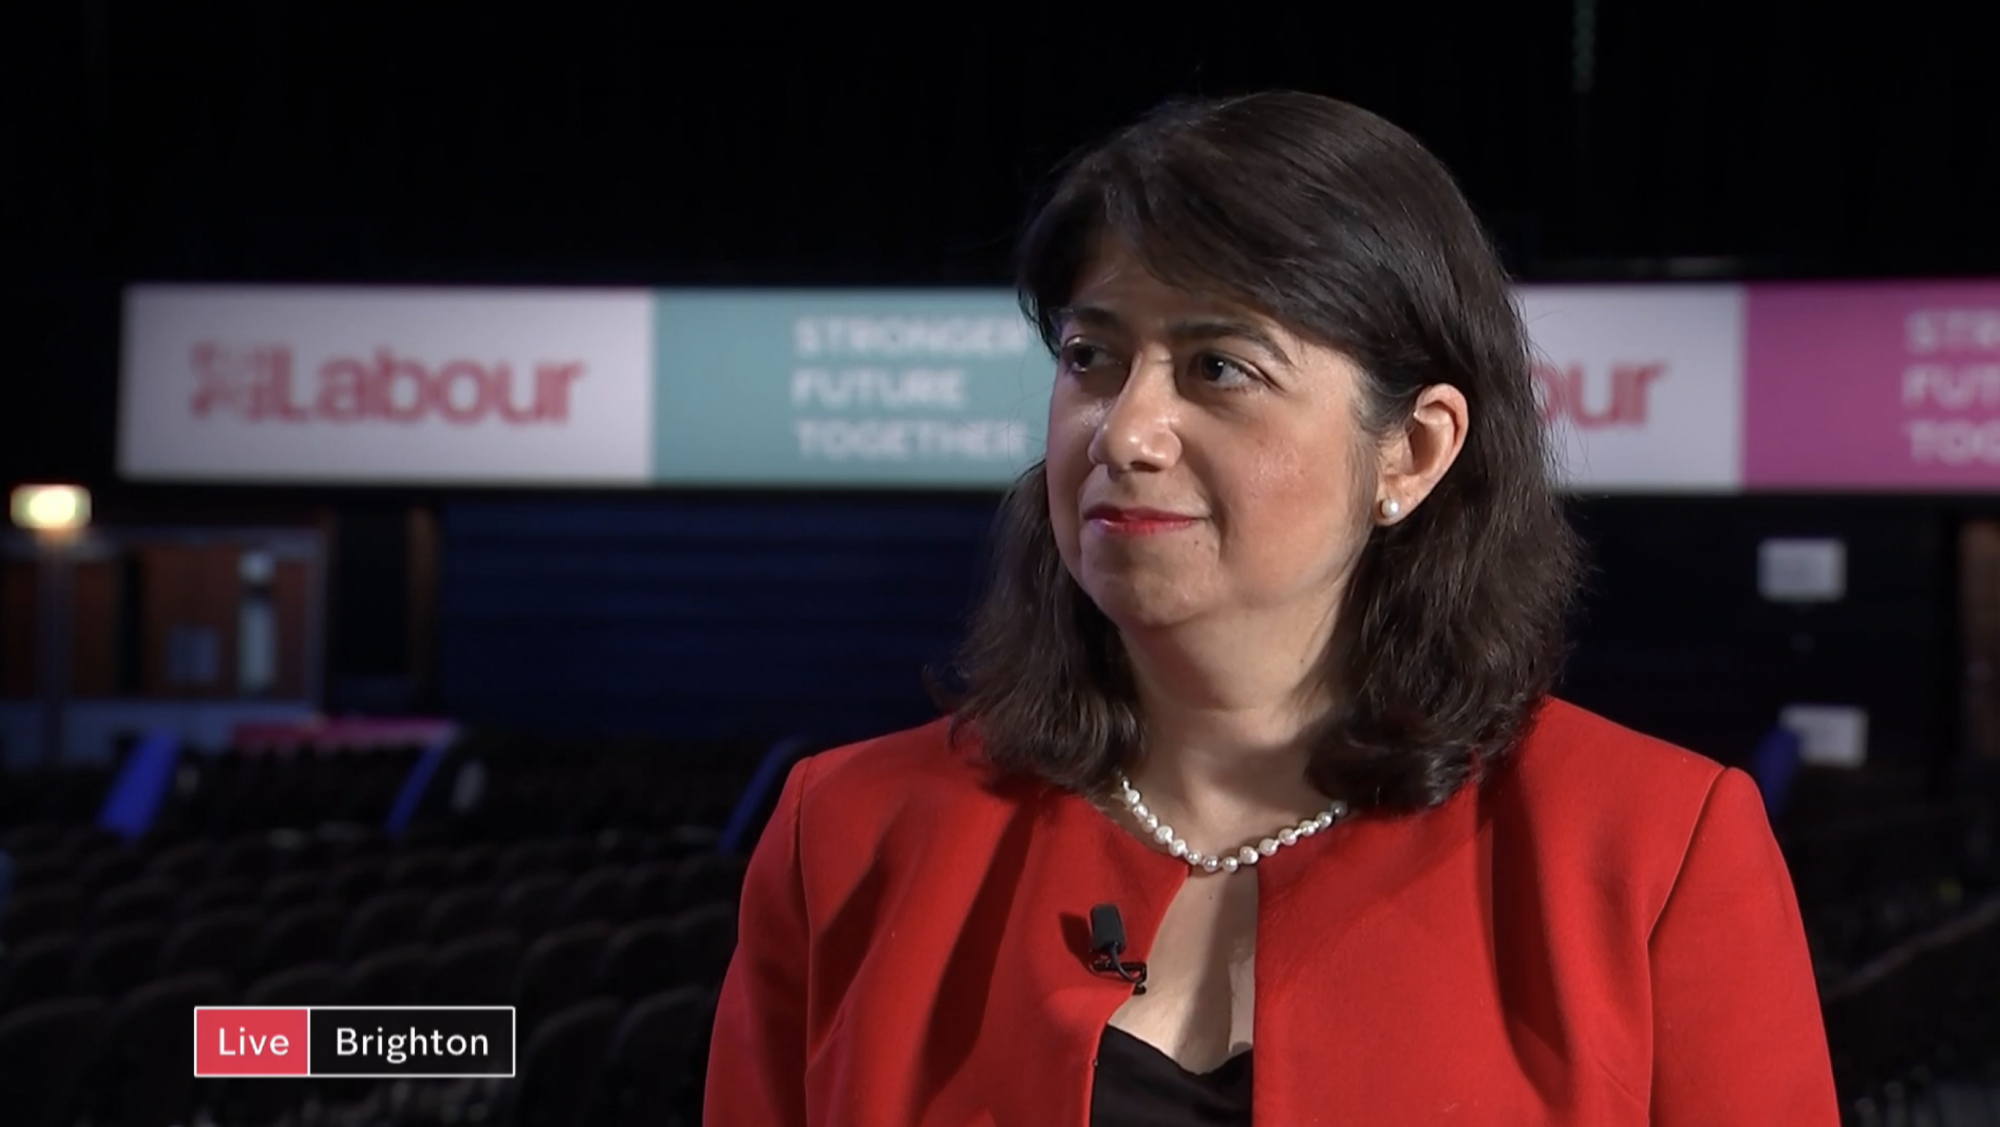 Labour 'is united' shadow minister says despite frontbench resignation - channel 4